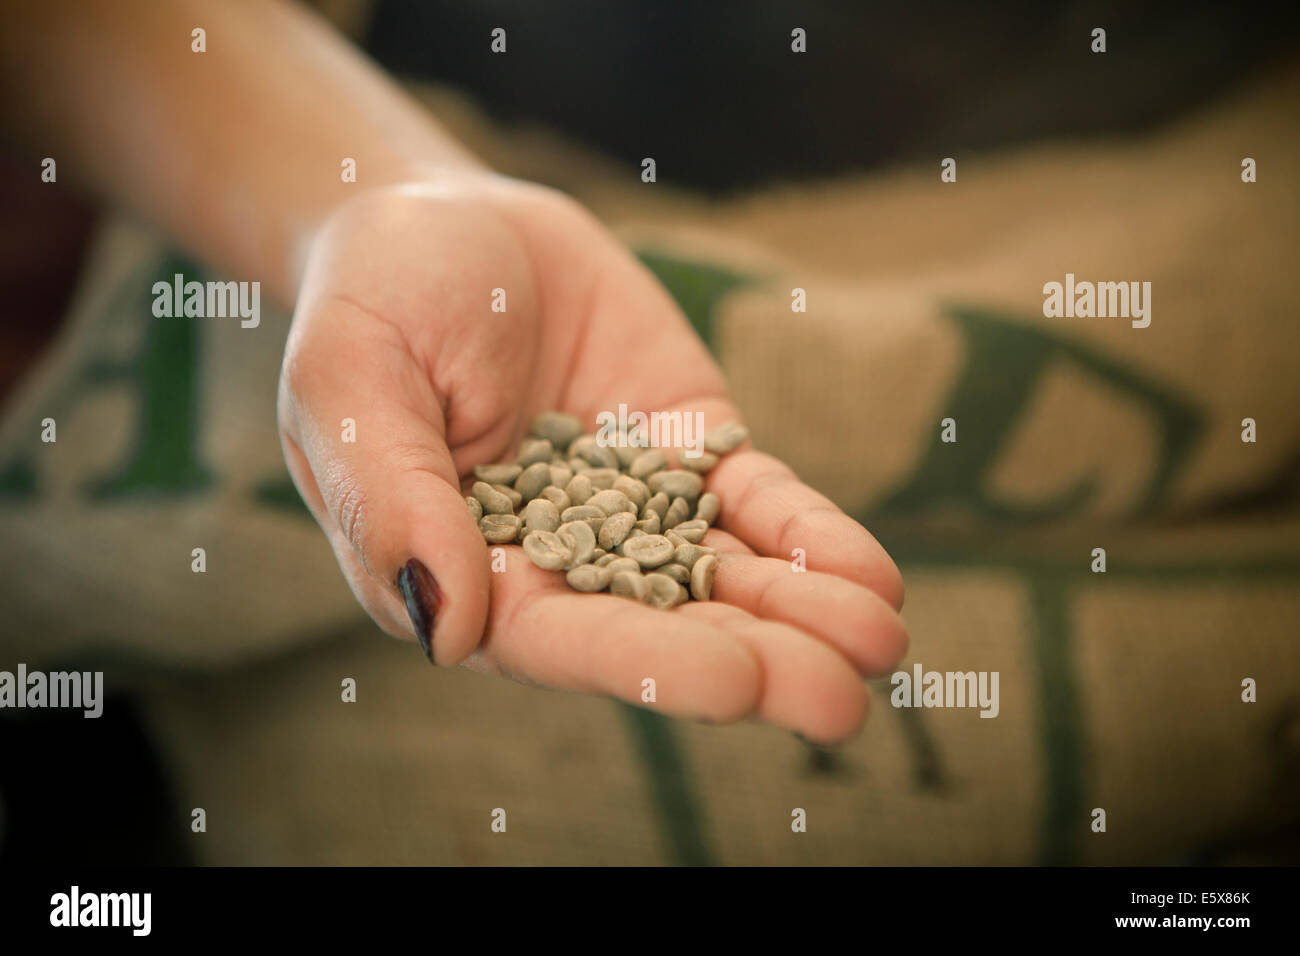 Close up of woman's hand holding raw coffee beans in cafe Stock Photo